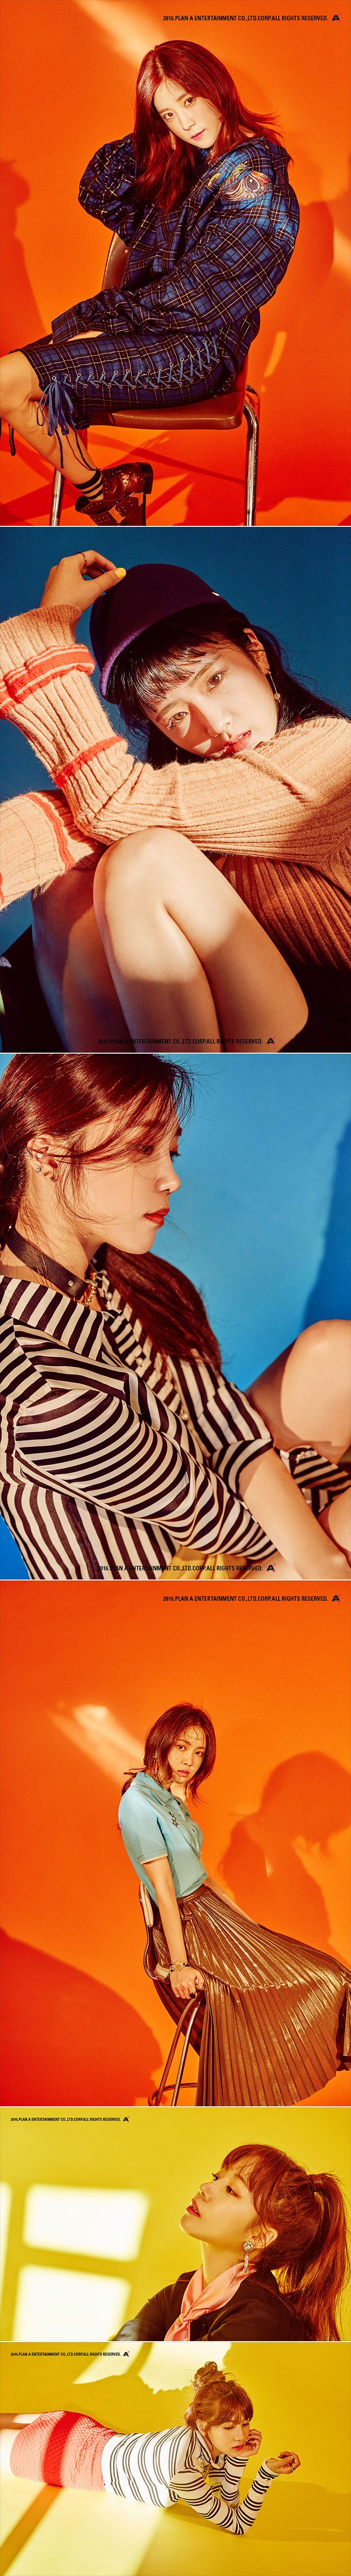 "Image: Apink teasers for ""Pink Revolution"" / Naver Music"